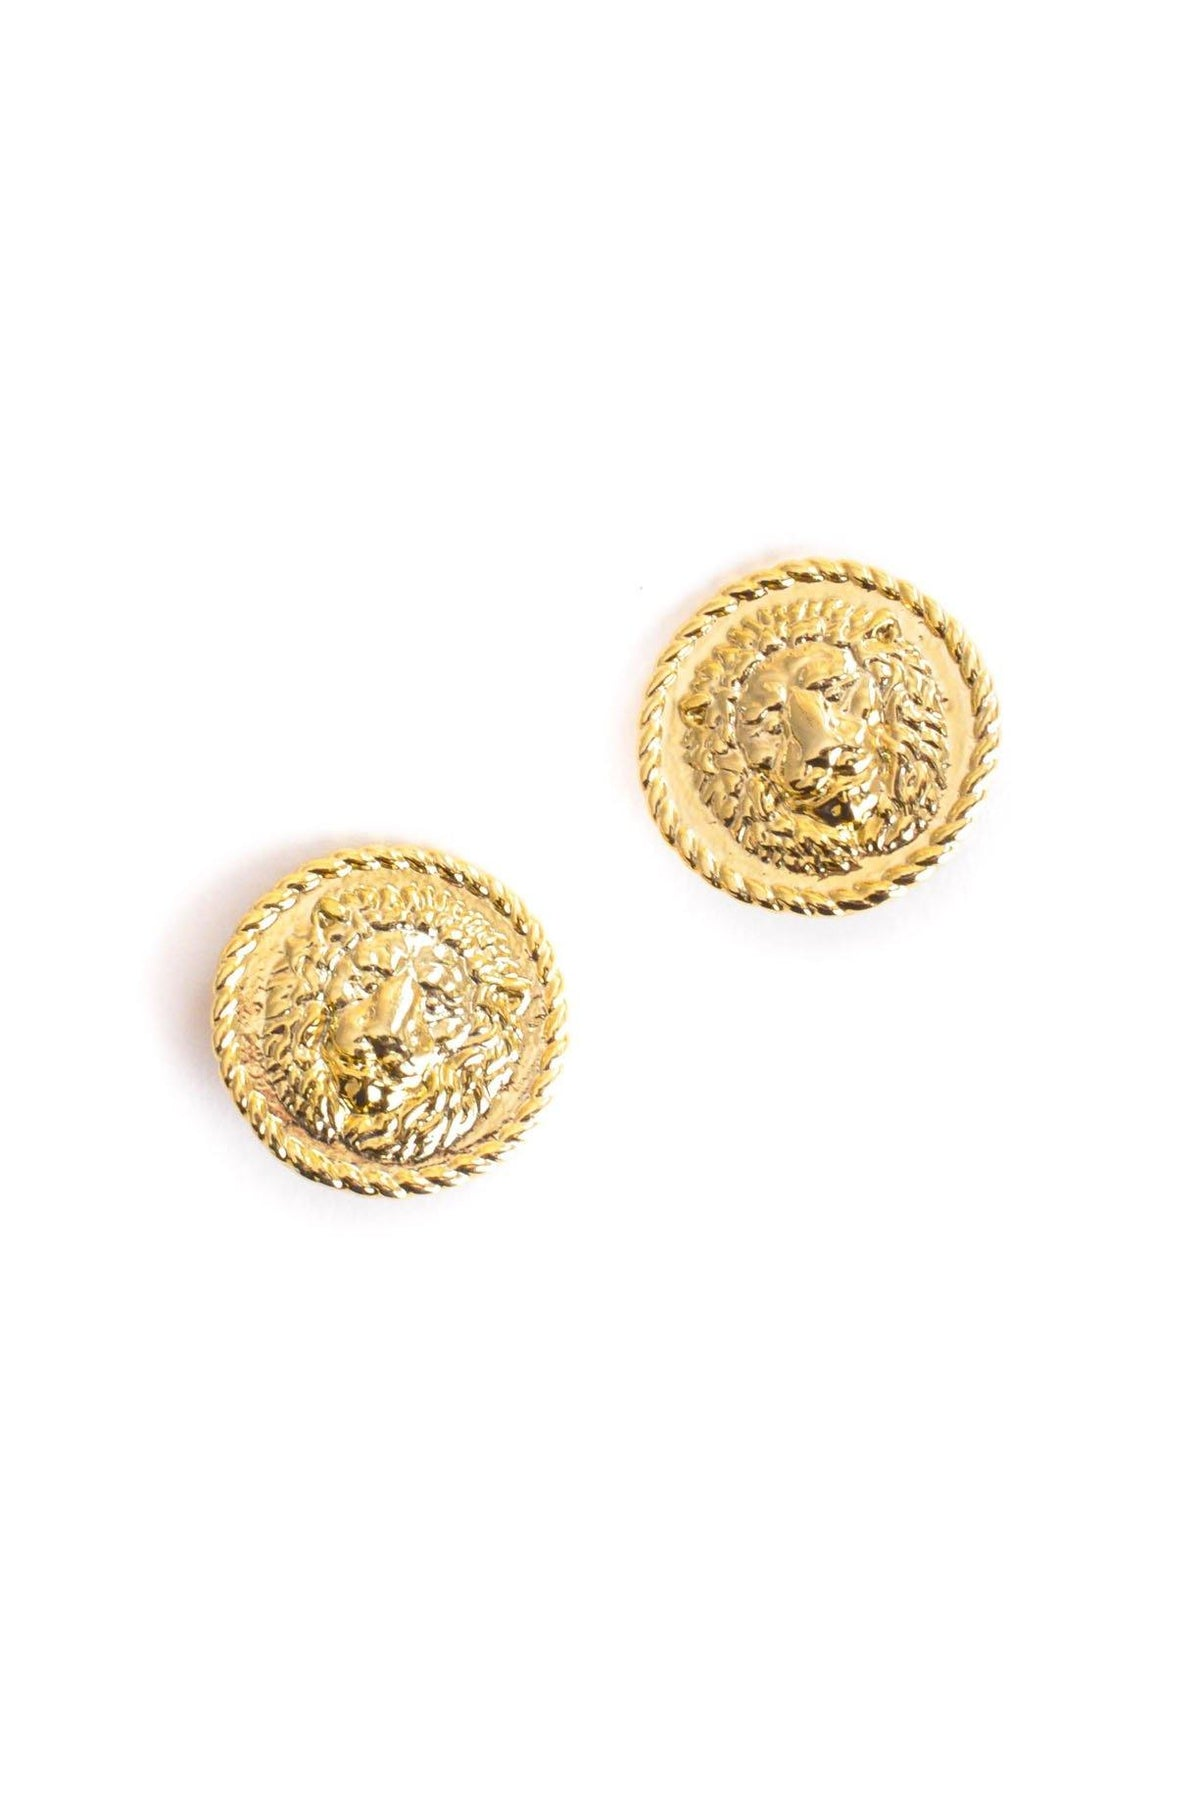 Vintage Lionhead Coin Clip-on Earrings from Sweet and Spark.